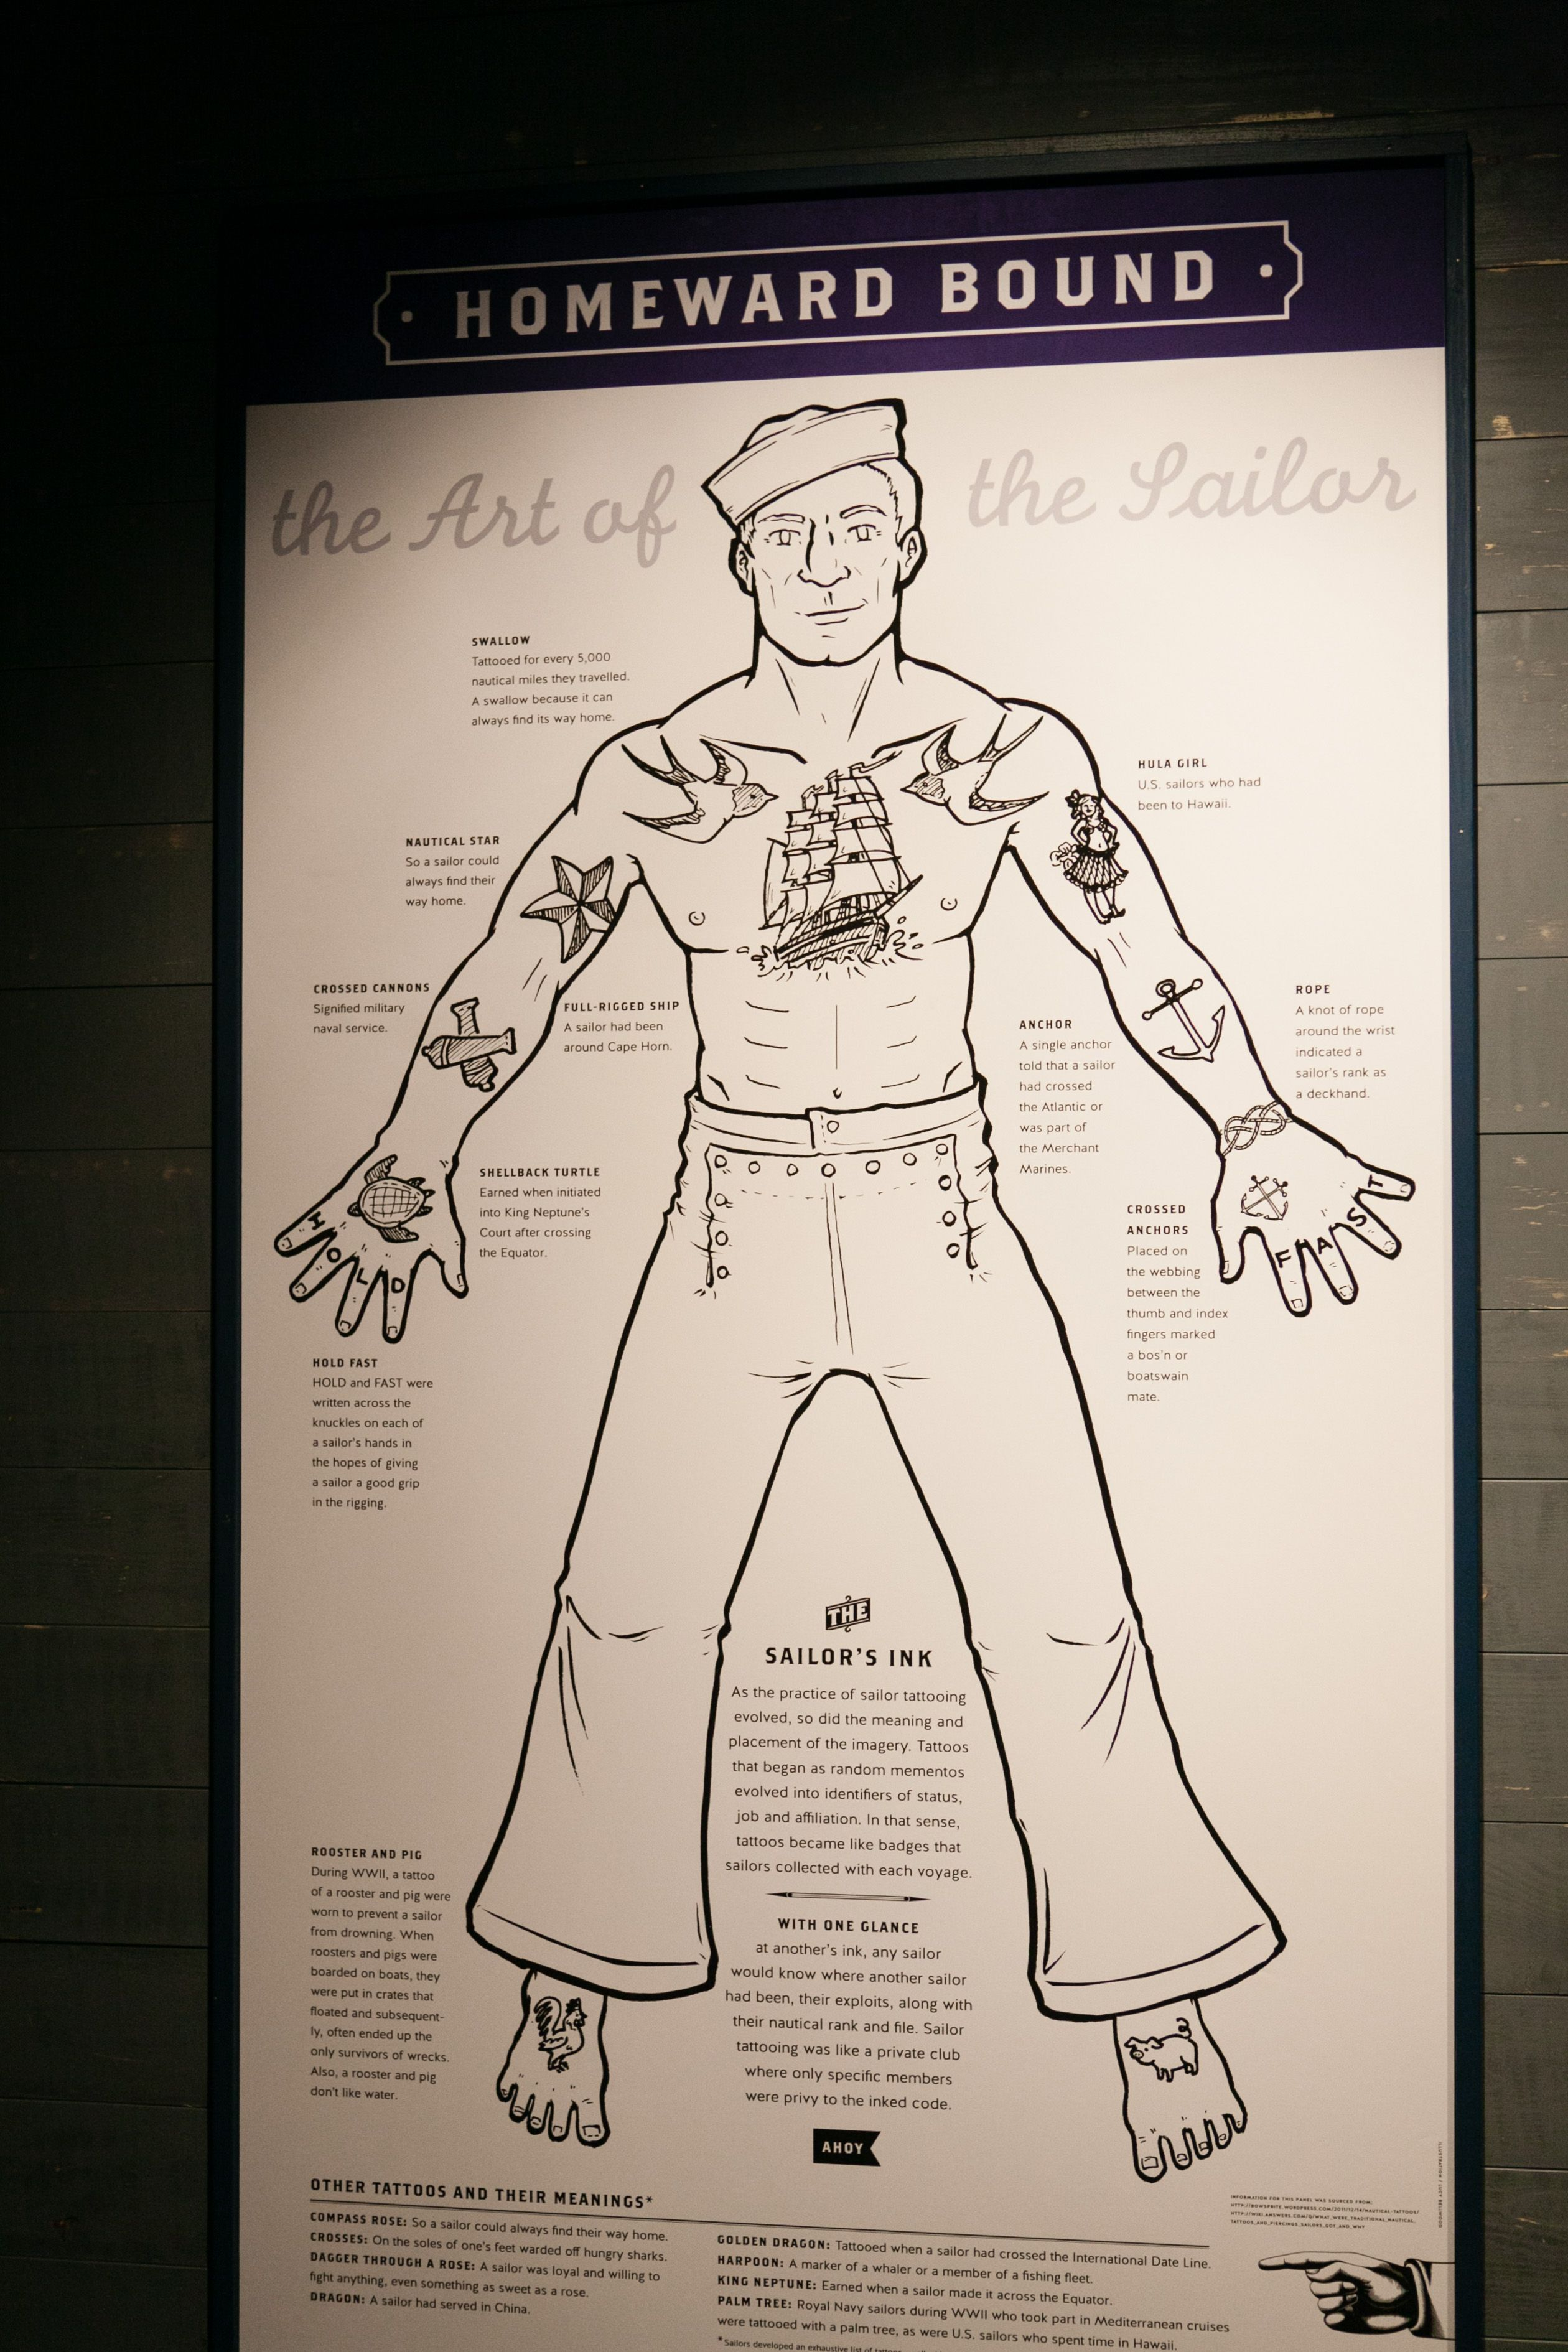 Old Naval Tattoo Code Images I Can Use For Class Pinterest